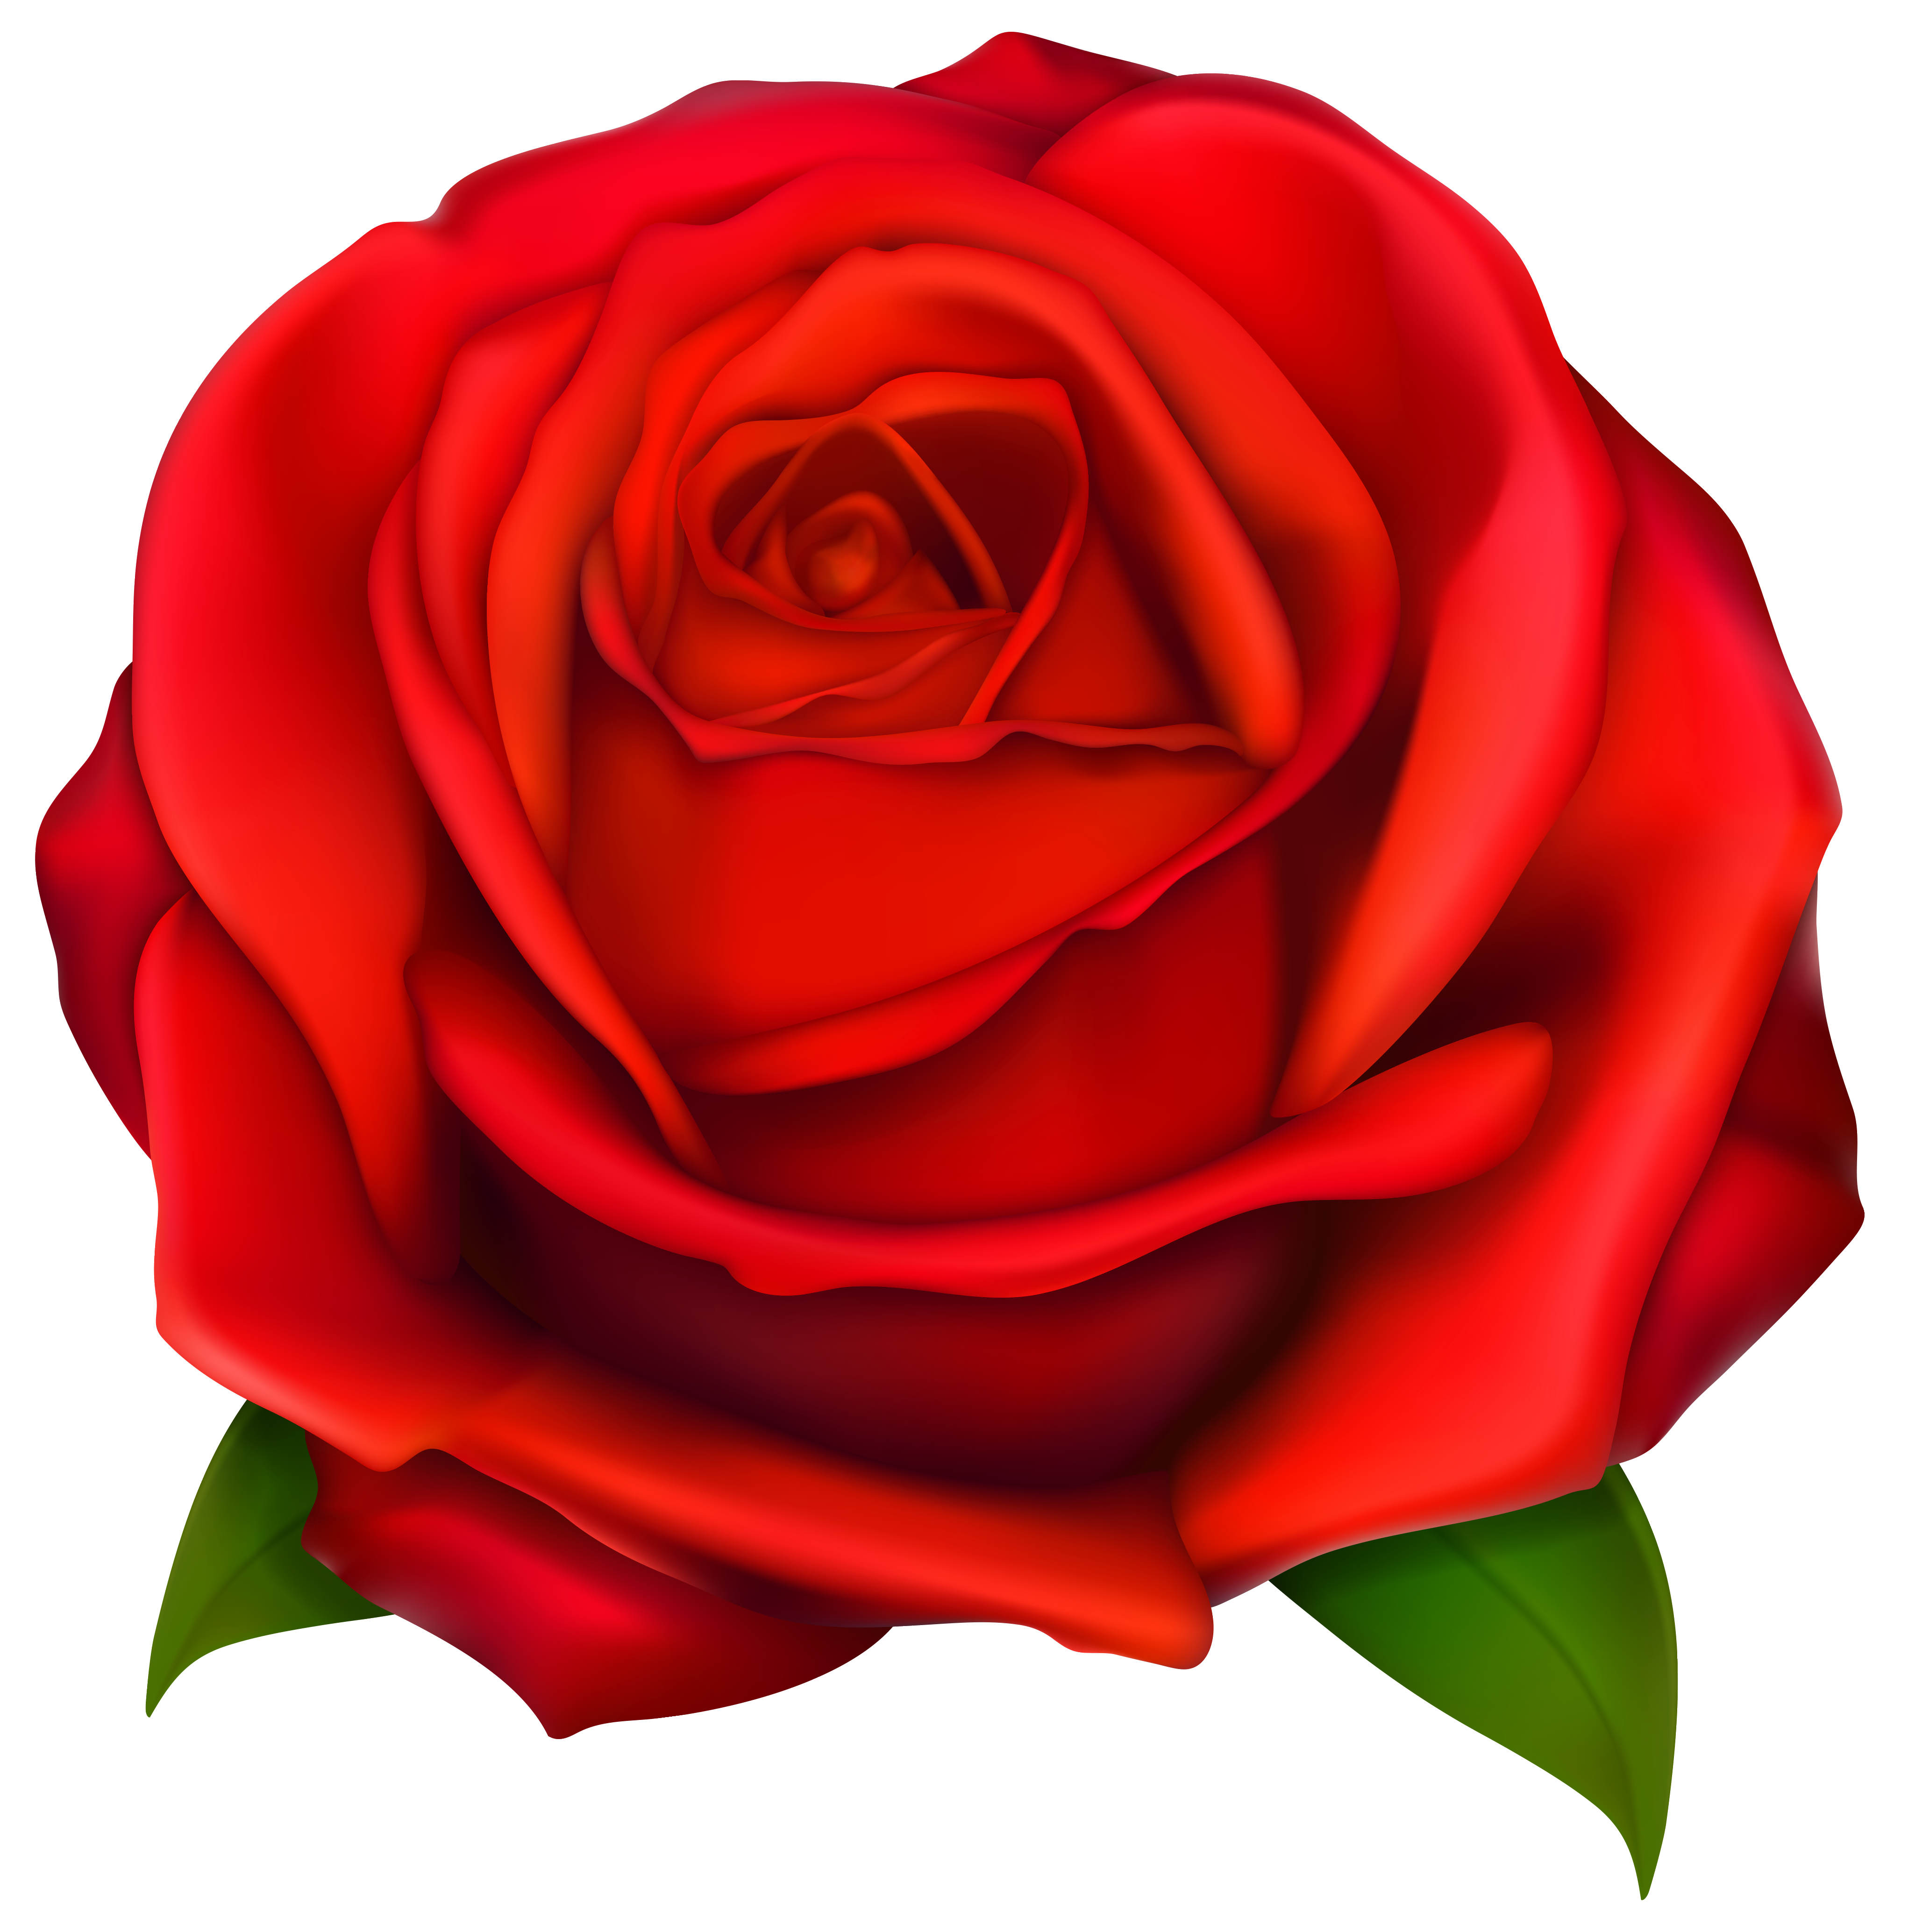 rose clip art sms - photo #32